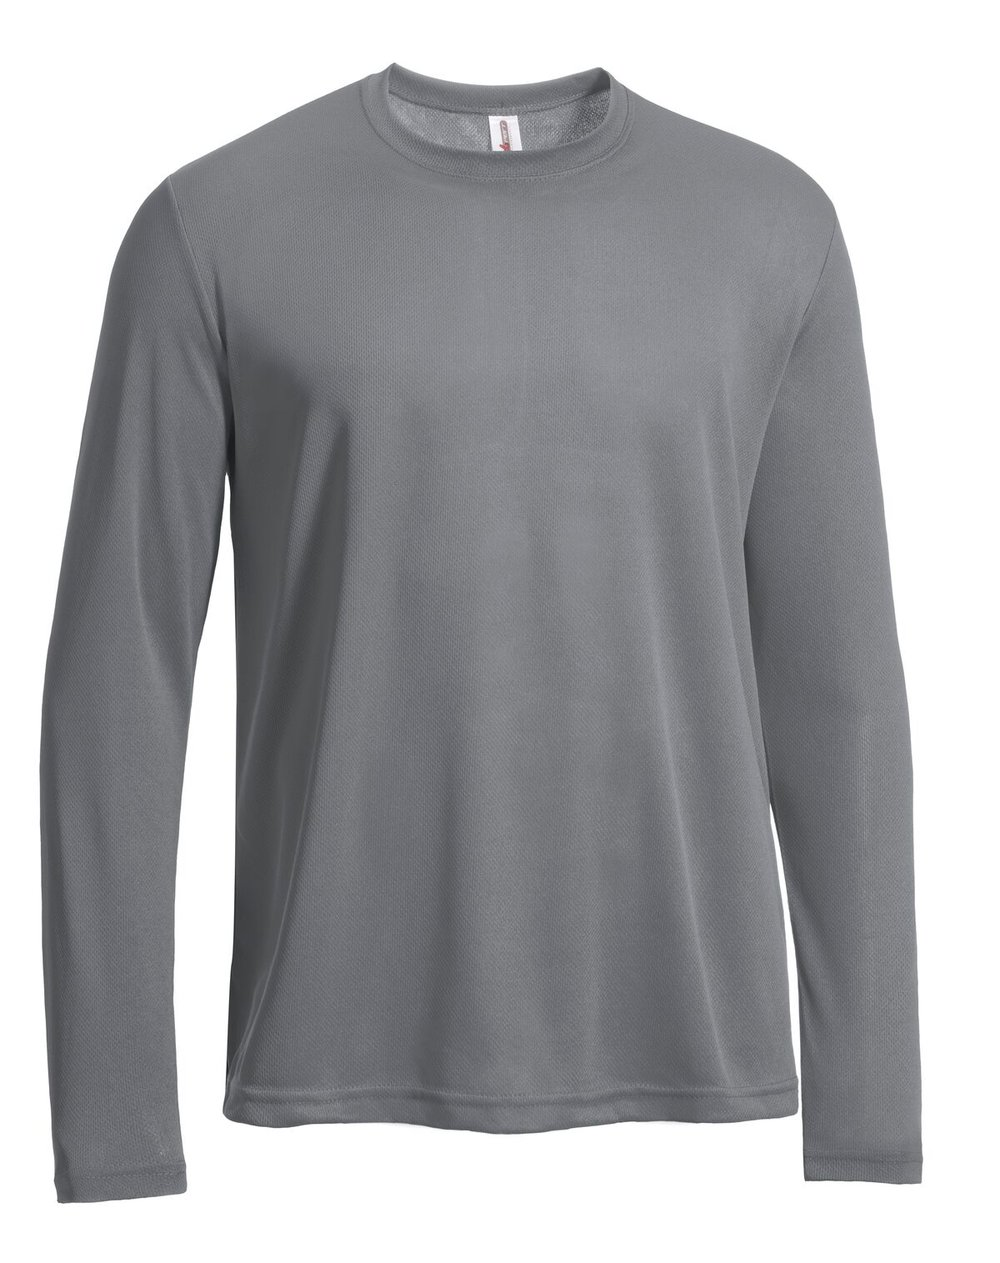 Men's Long Sleeve Tec Tee